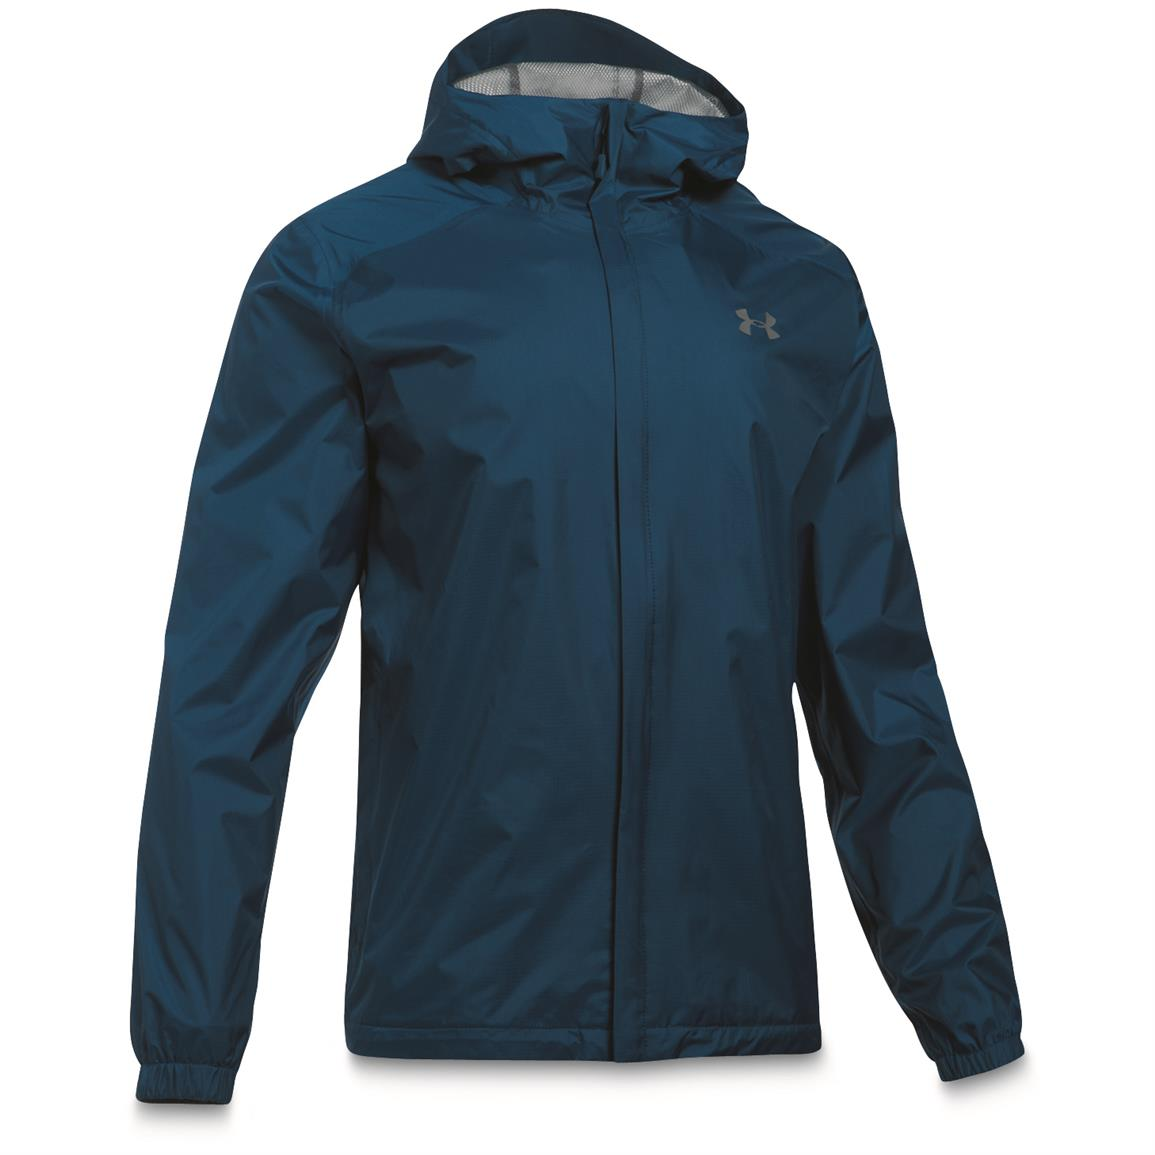 Under Armour Men's Waterproof / Windproof Bora Jacket, Blackout Navy